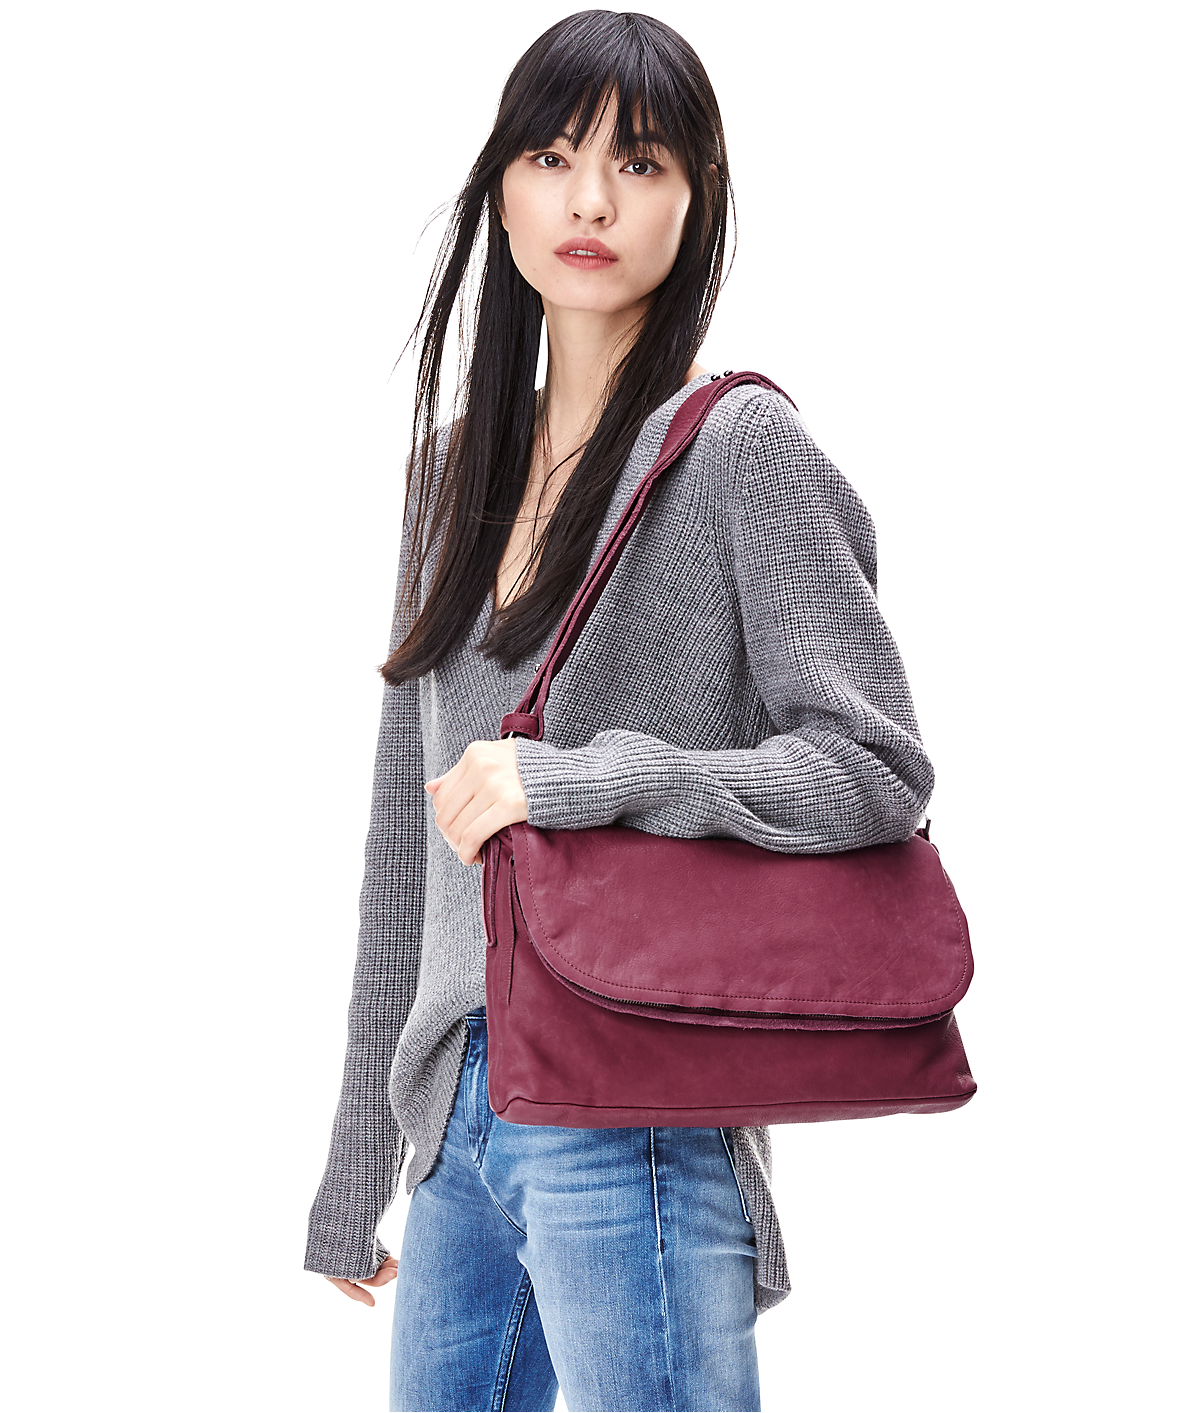 Ota shoulder bag from liebeskind